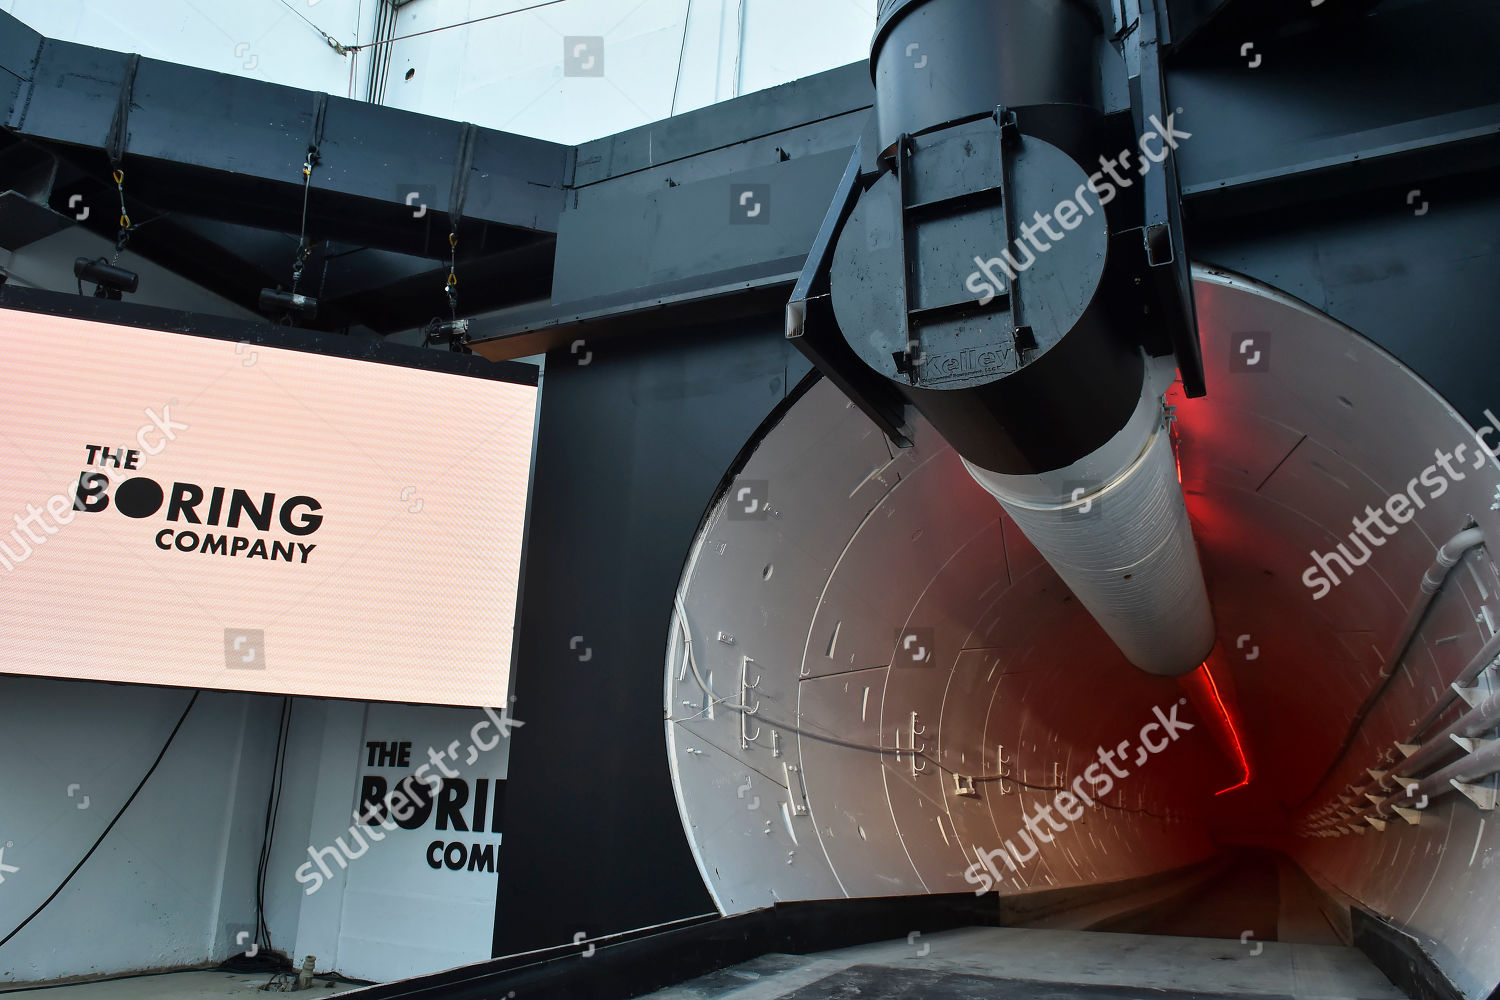 Boring Co signage displayed tunnel entrance before Editorial